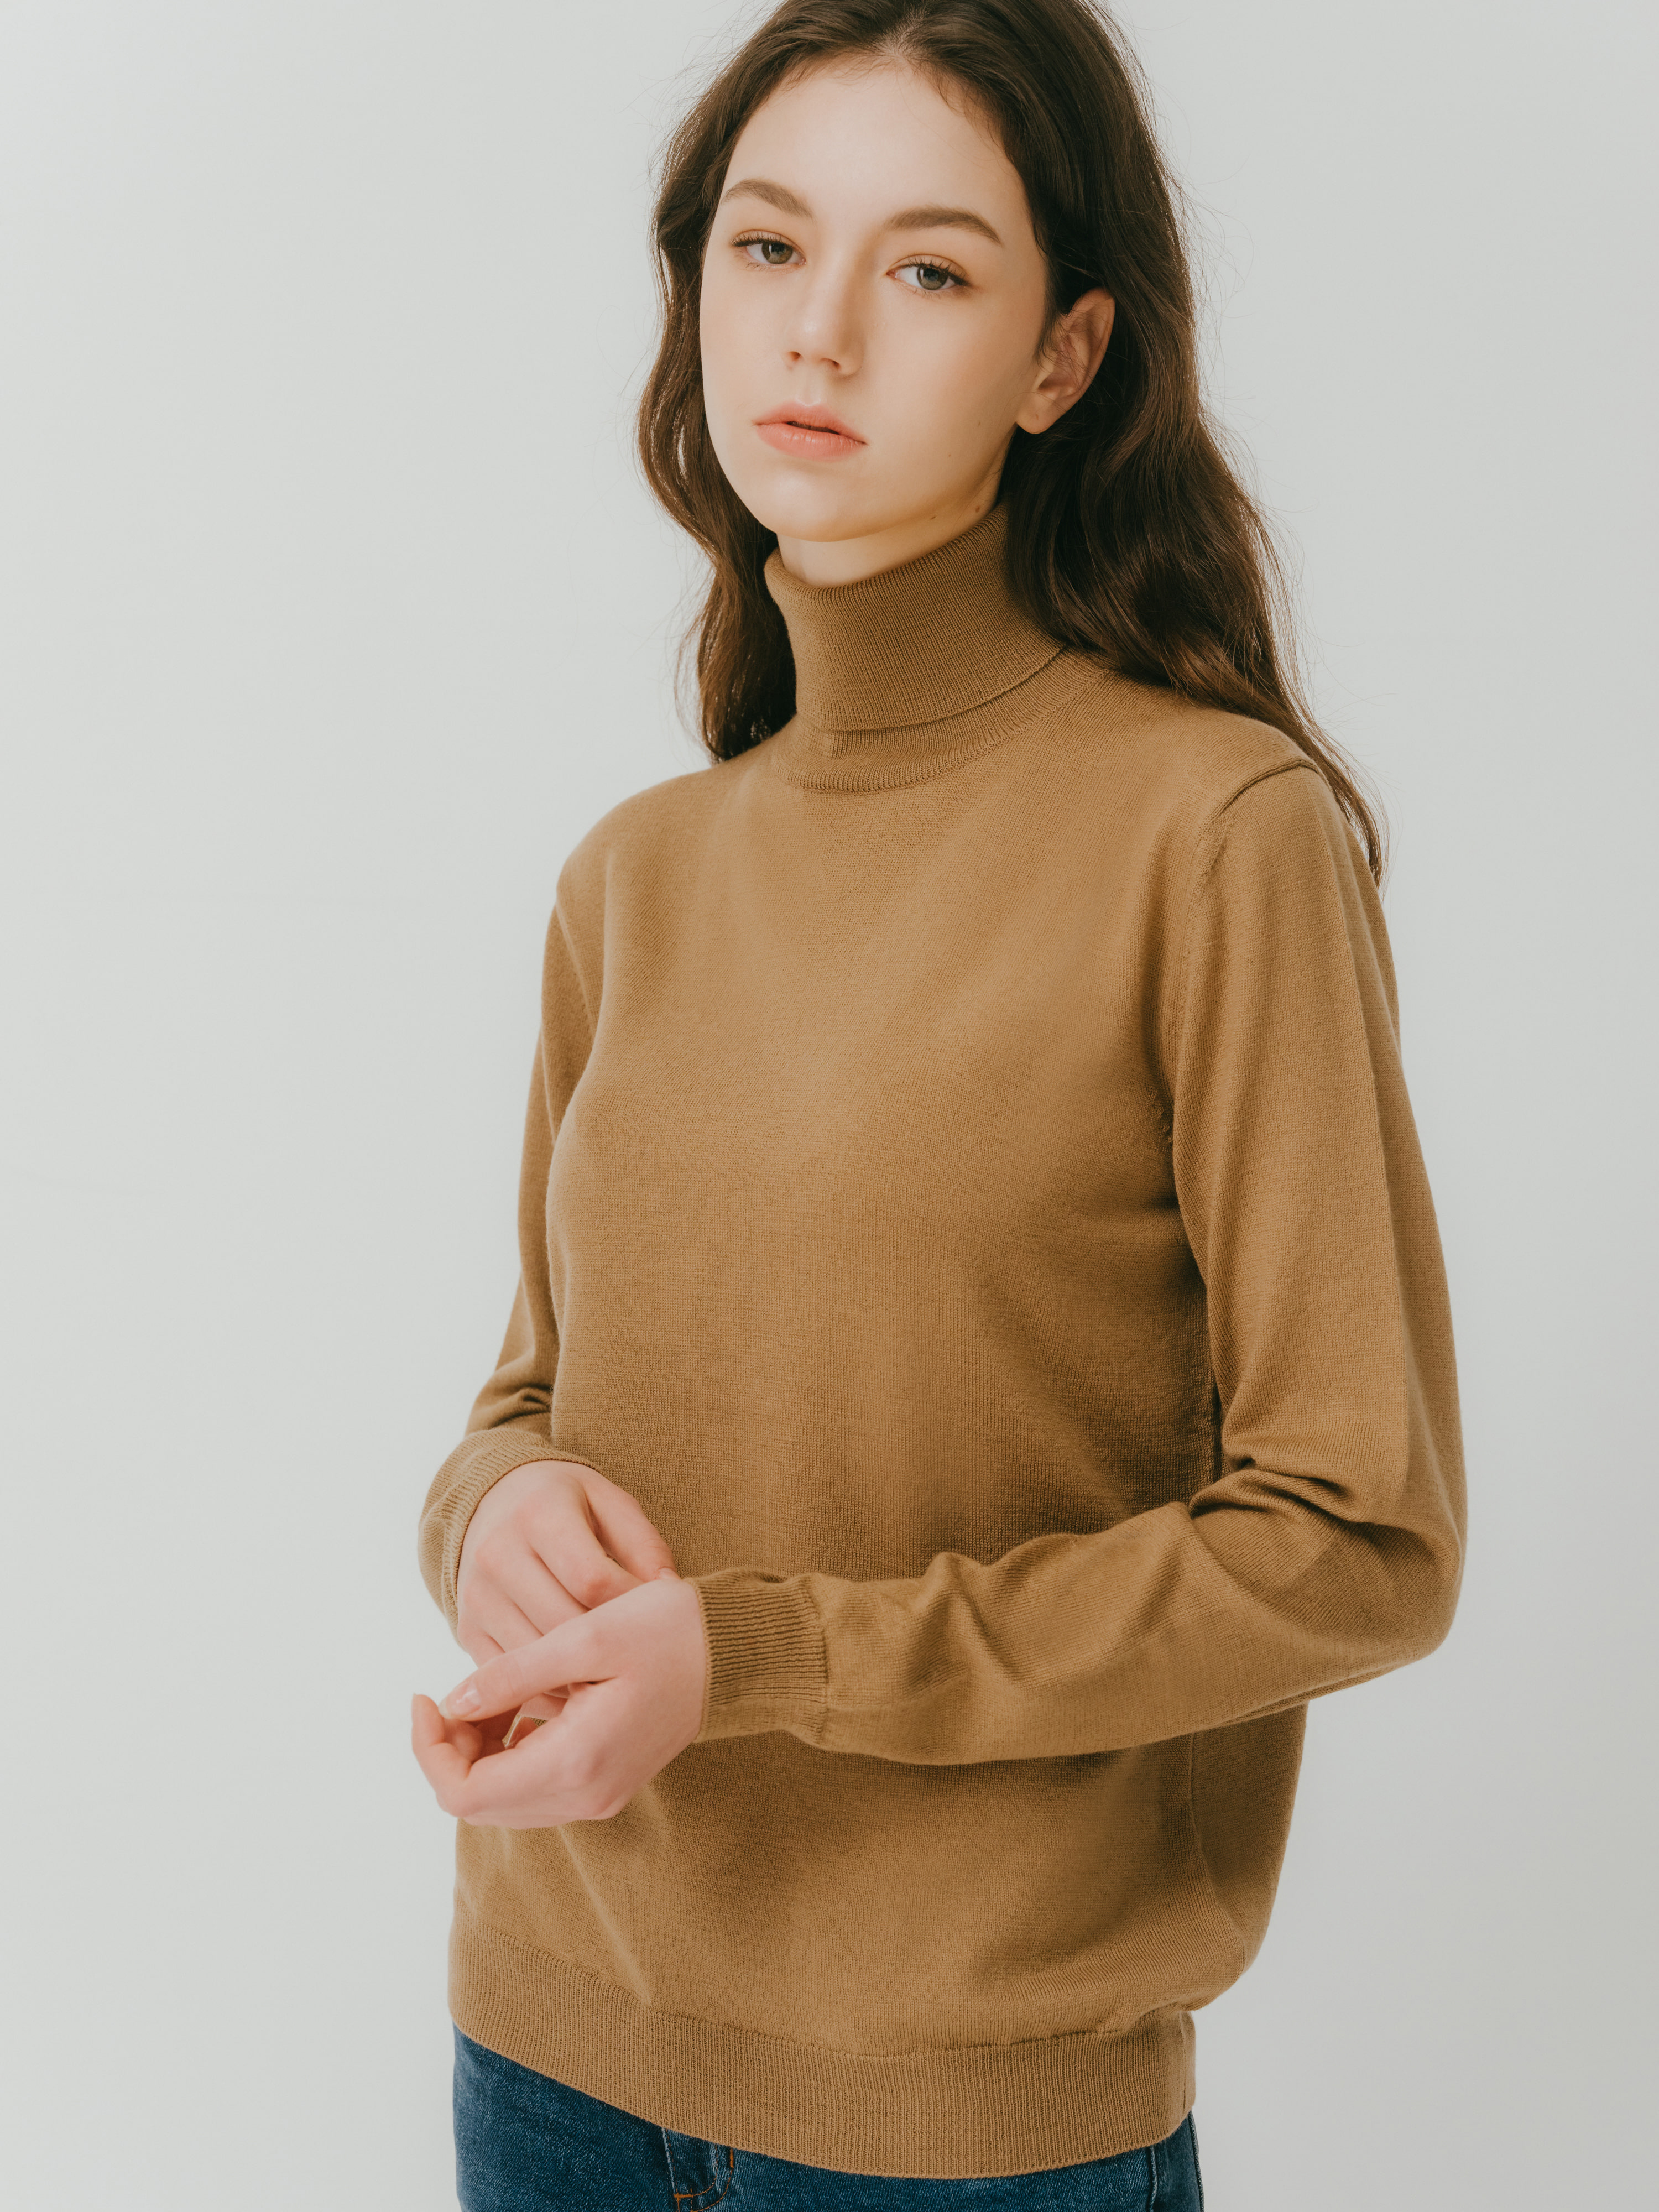 Lonio Turtle neck knit(Camel)